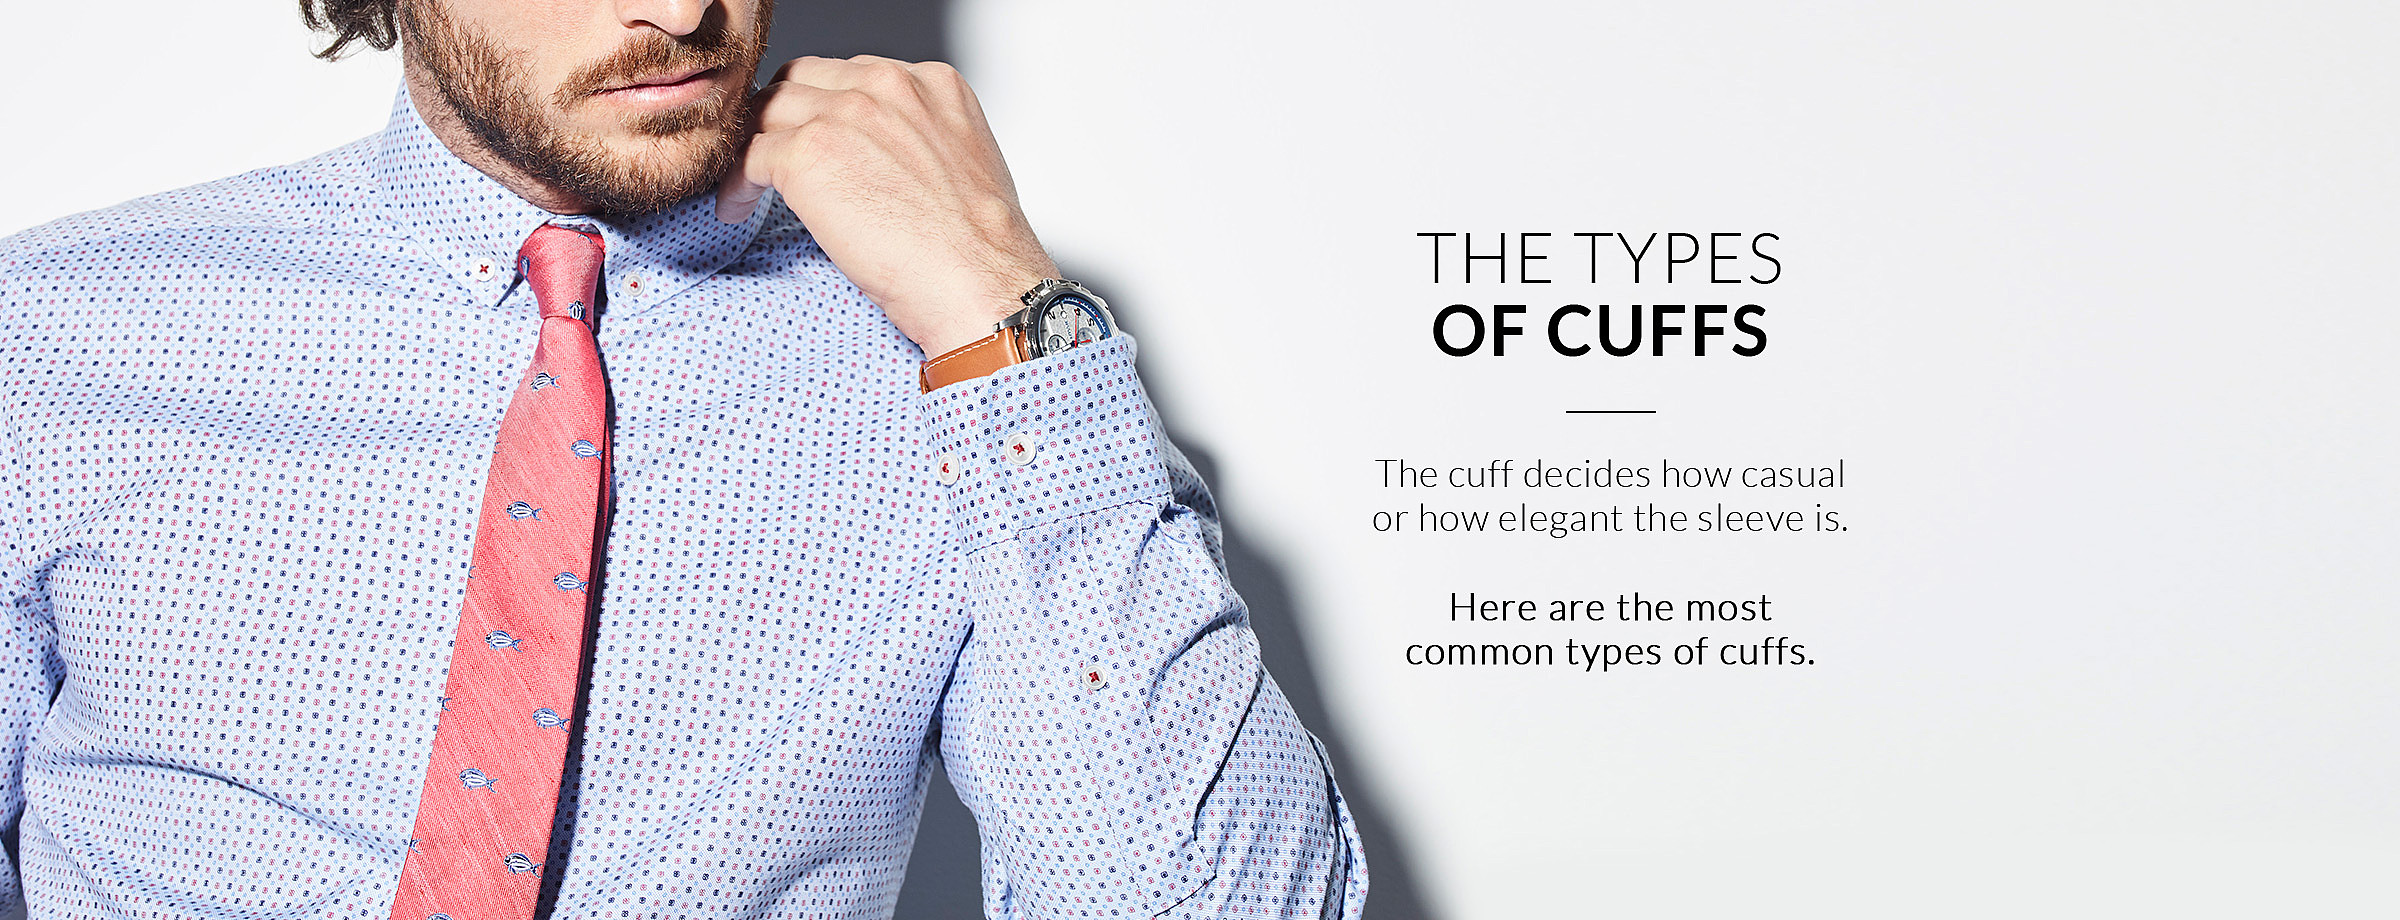 The types of cuffs